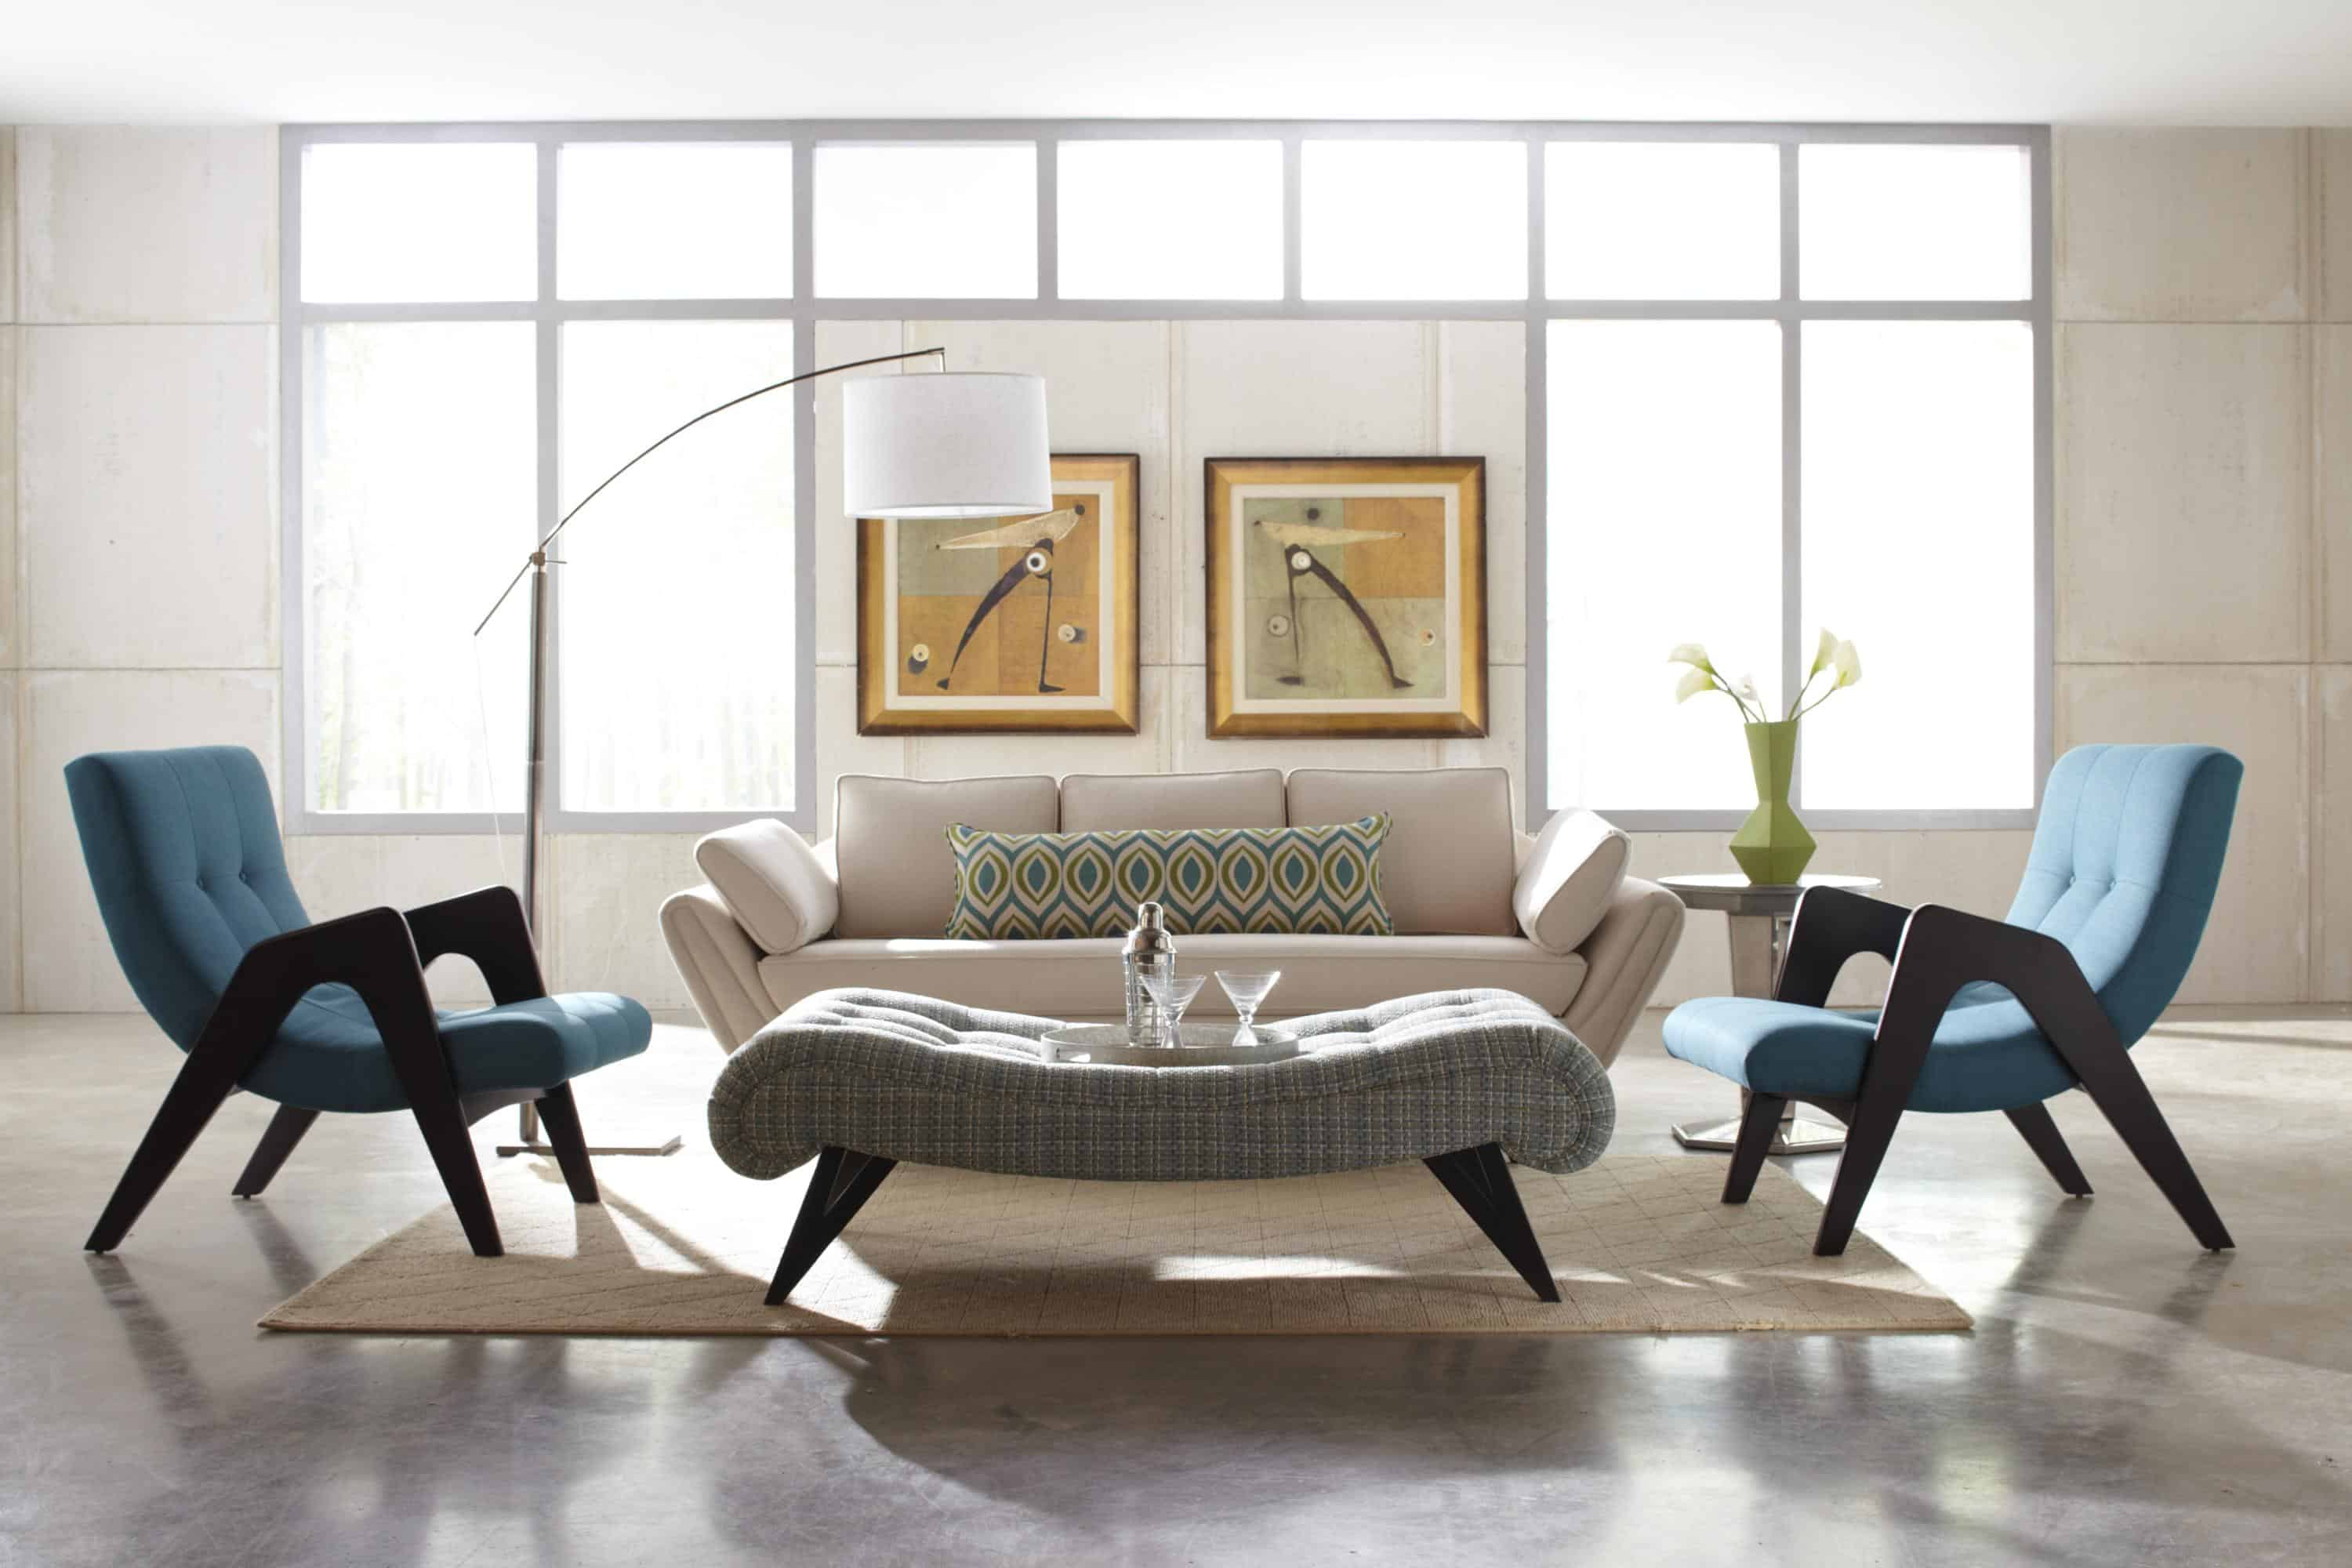 exquisite-modern-accent-chairs-for-living-room-furniture-home-design-with-arms-ideasjpg